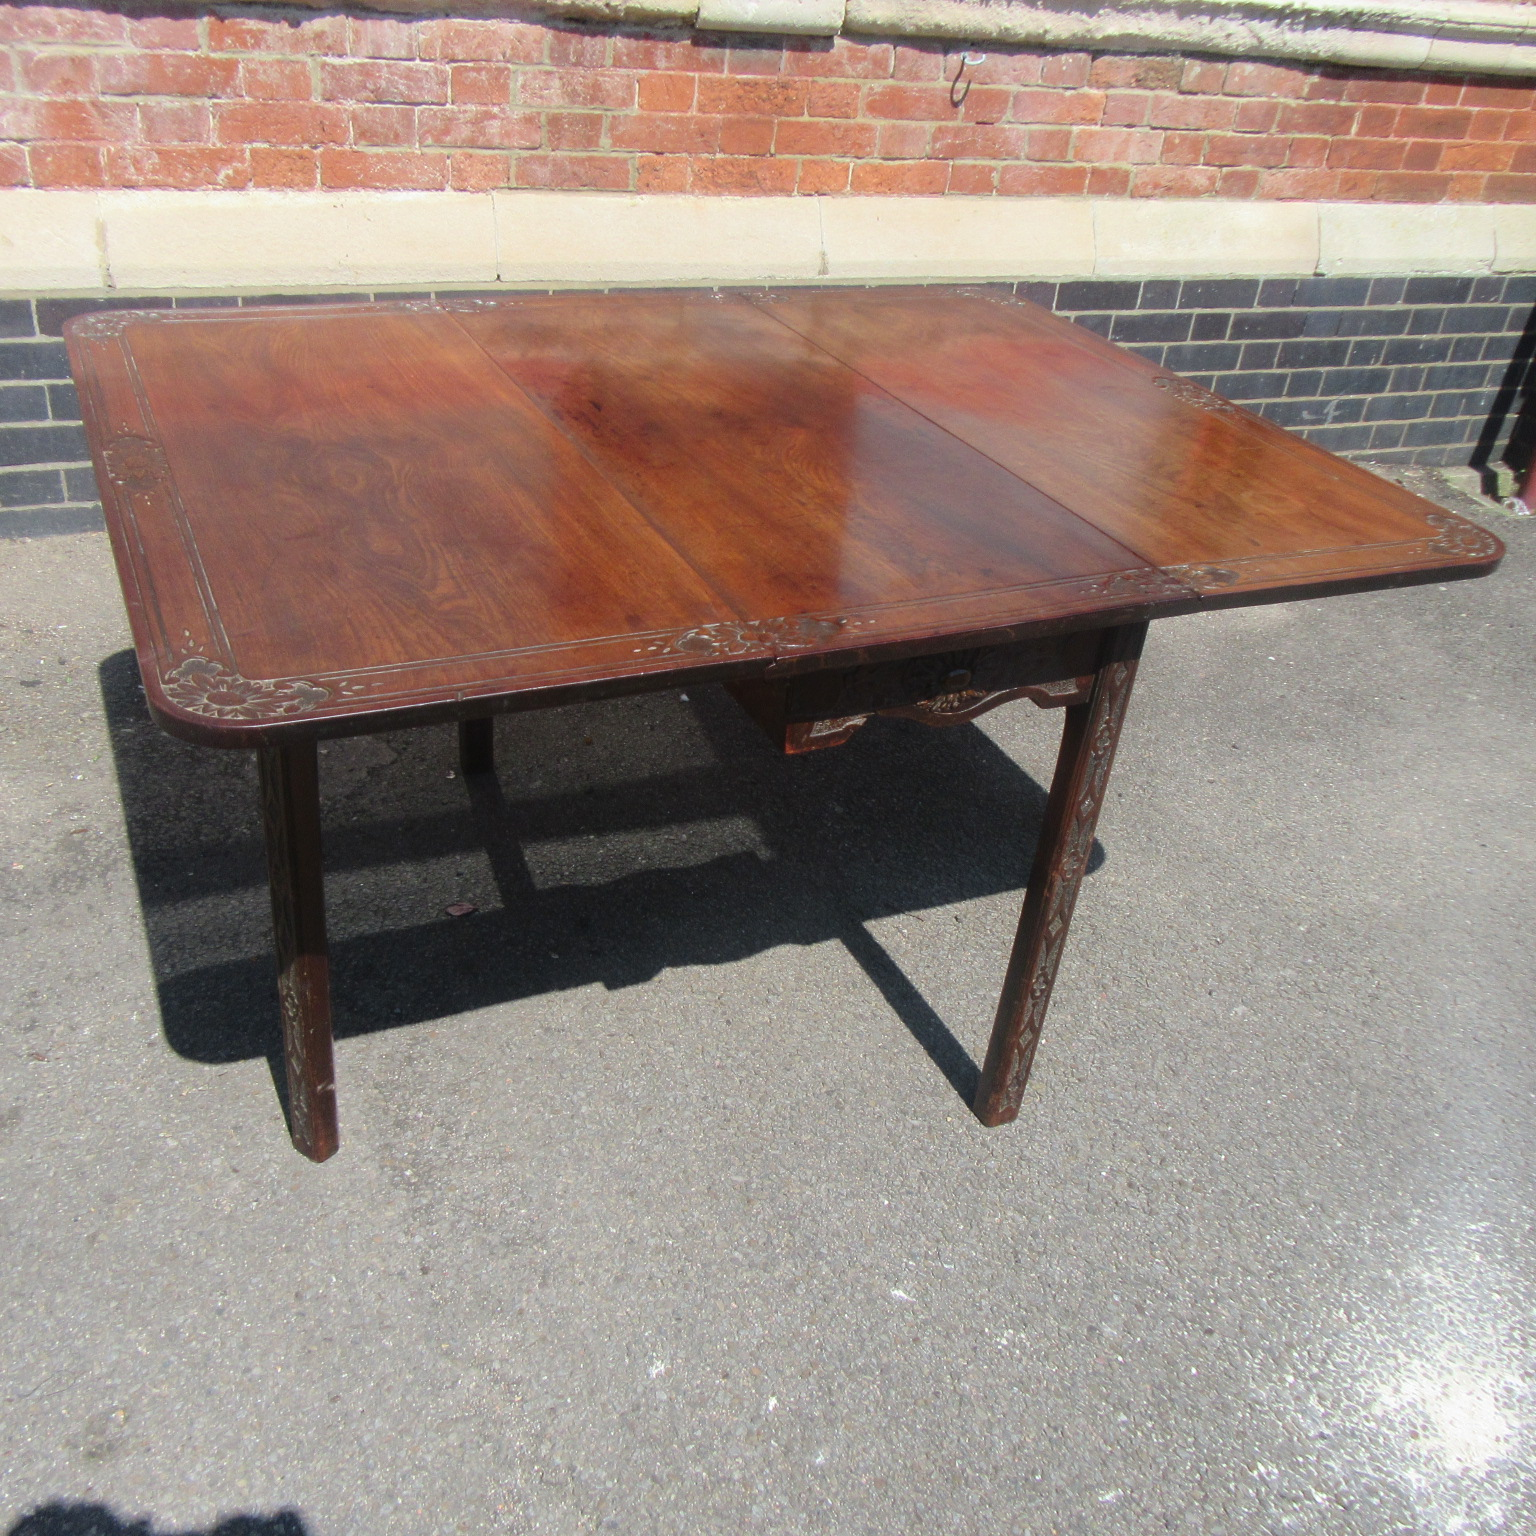 ANTIQUE COLONIAL MAHOGANY GATE LEG DINING TABLE Eras Of Style Eras Of Style